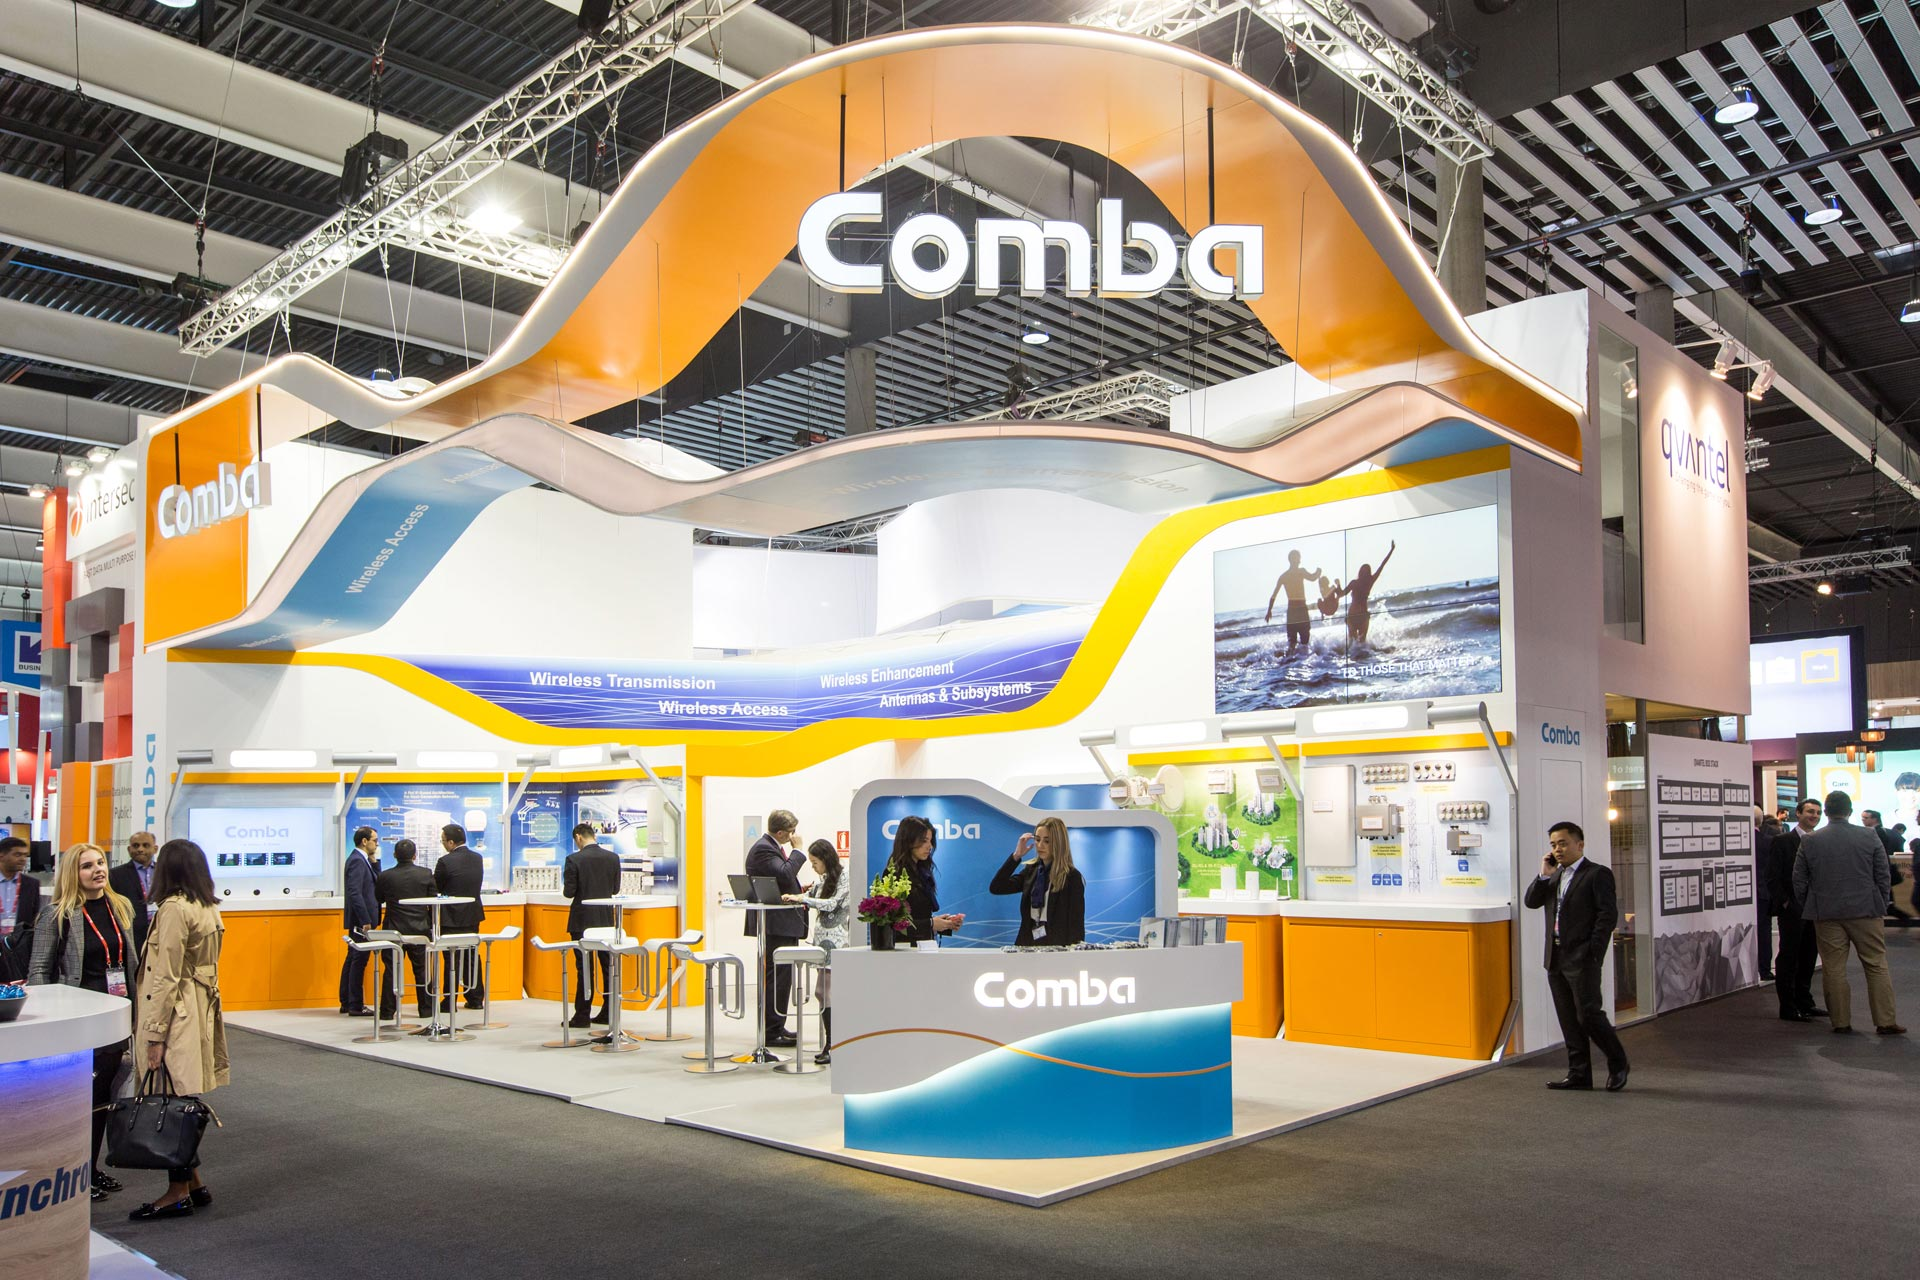 Comba mwc barcelona 2016 pro expo exhibition stand for Expo barcelona